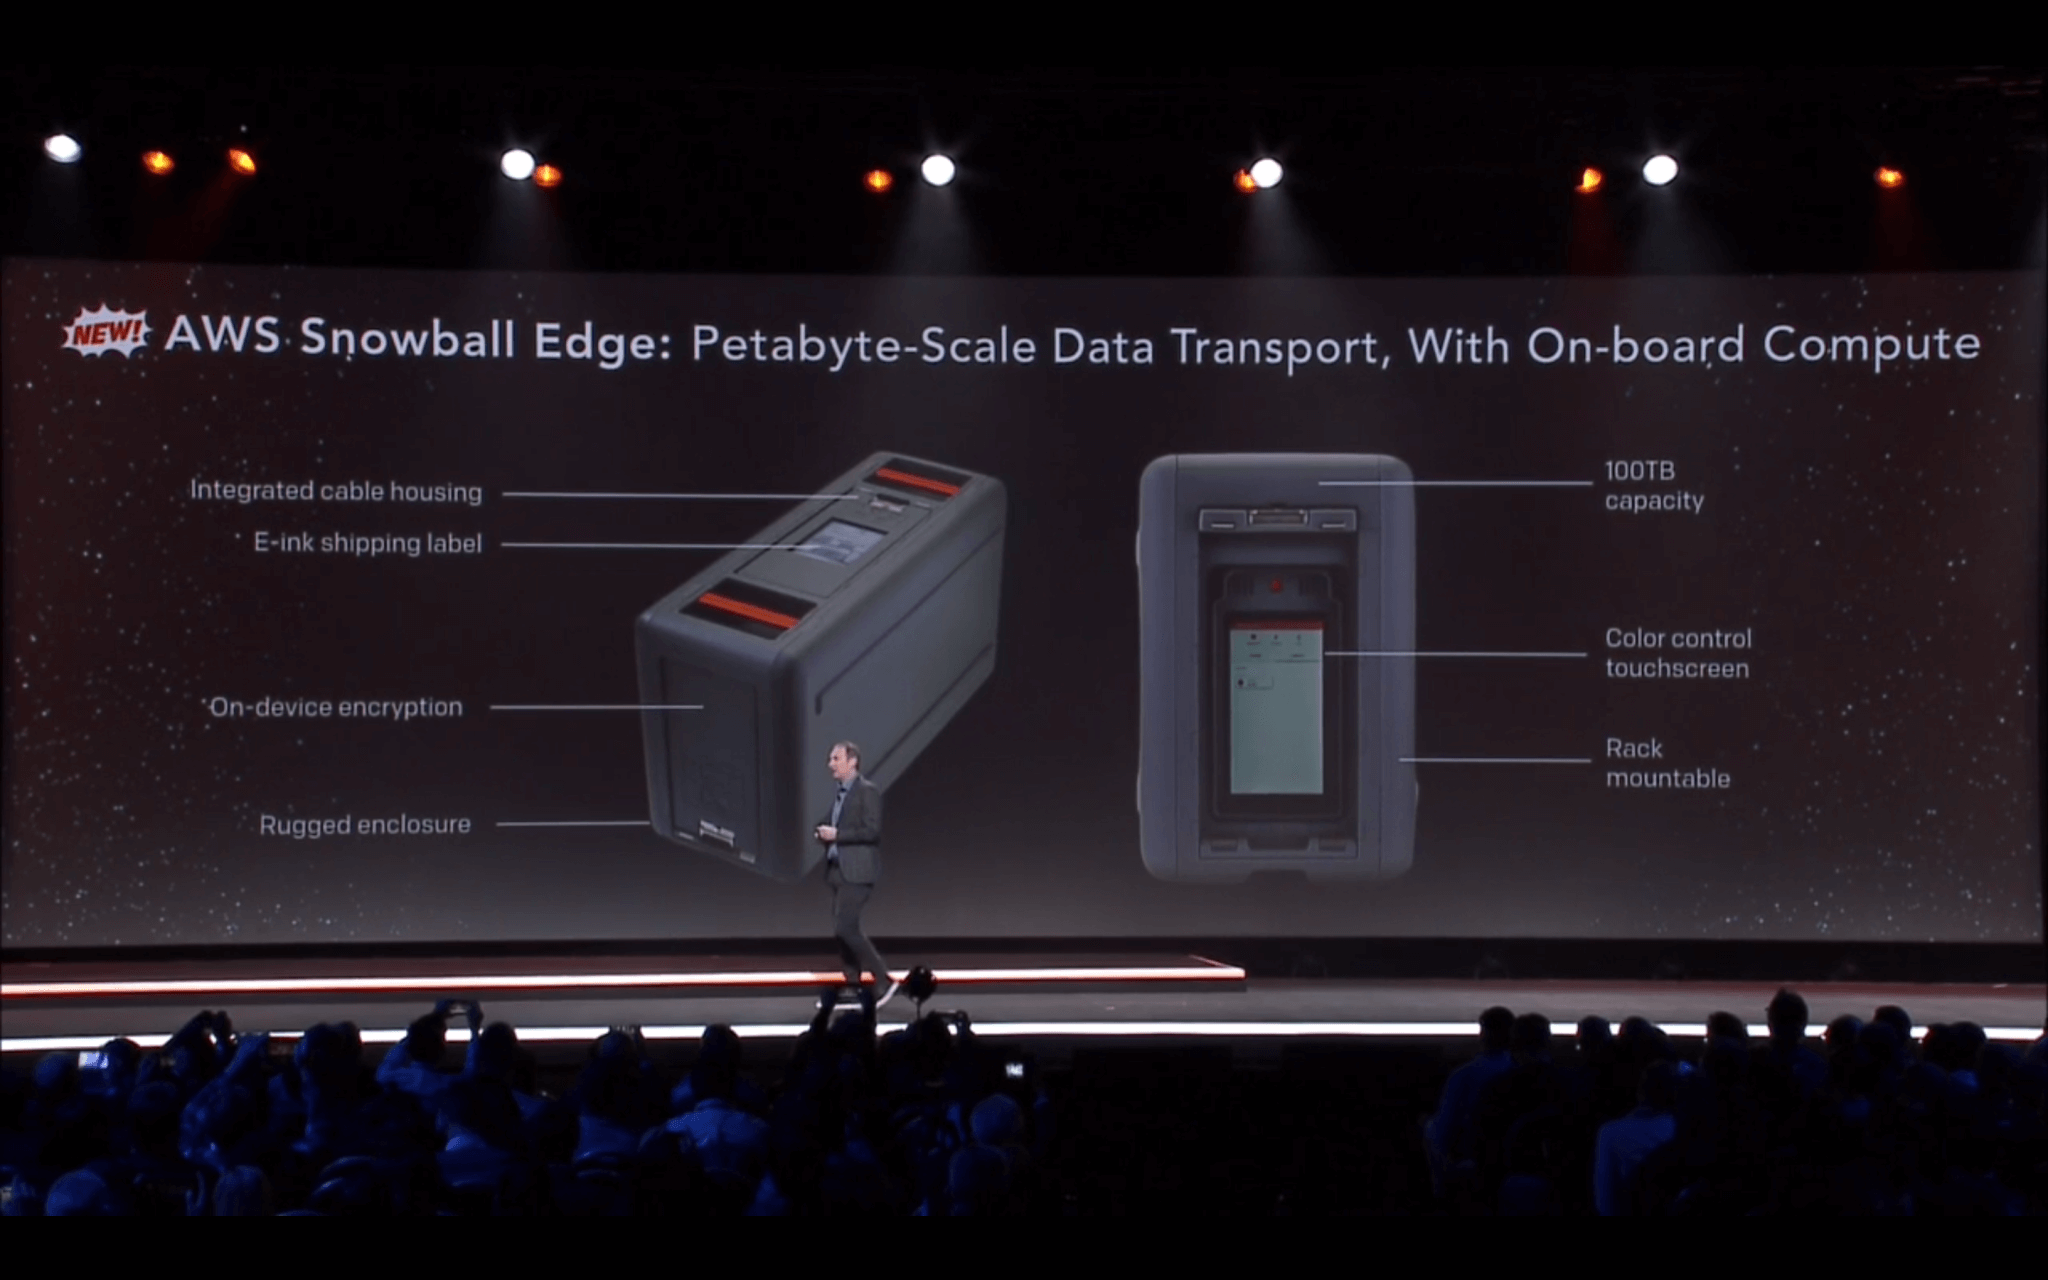 AWS Snowball Edge.